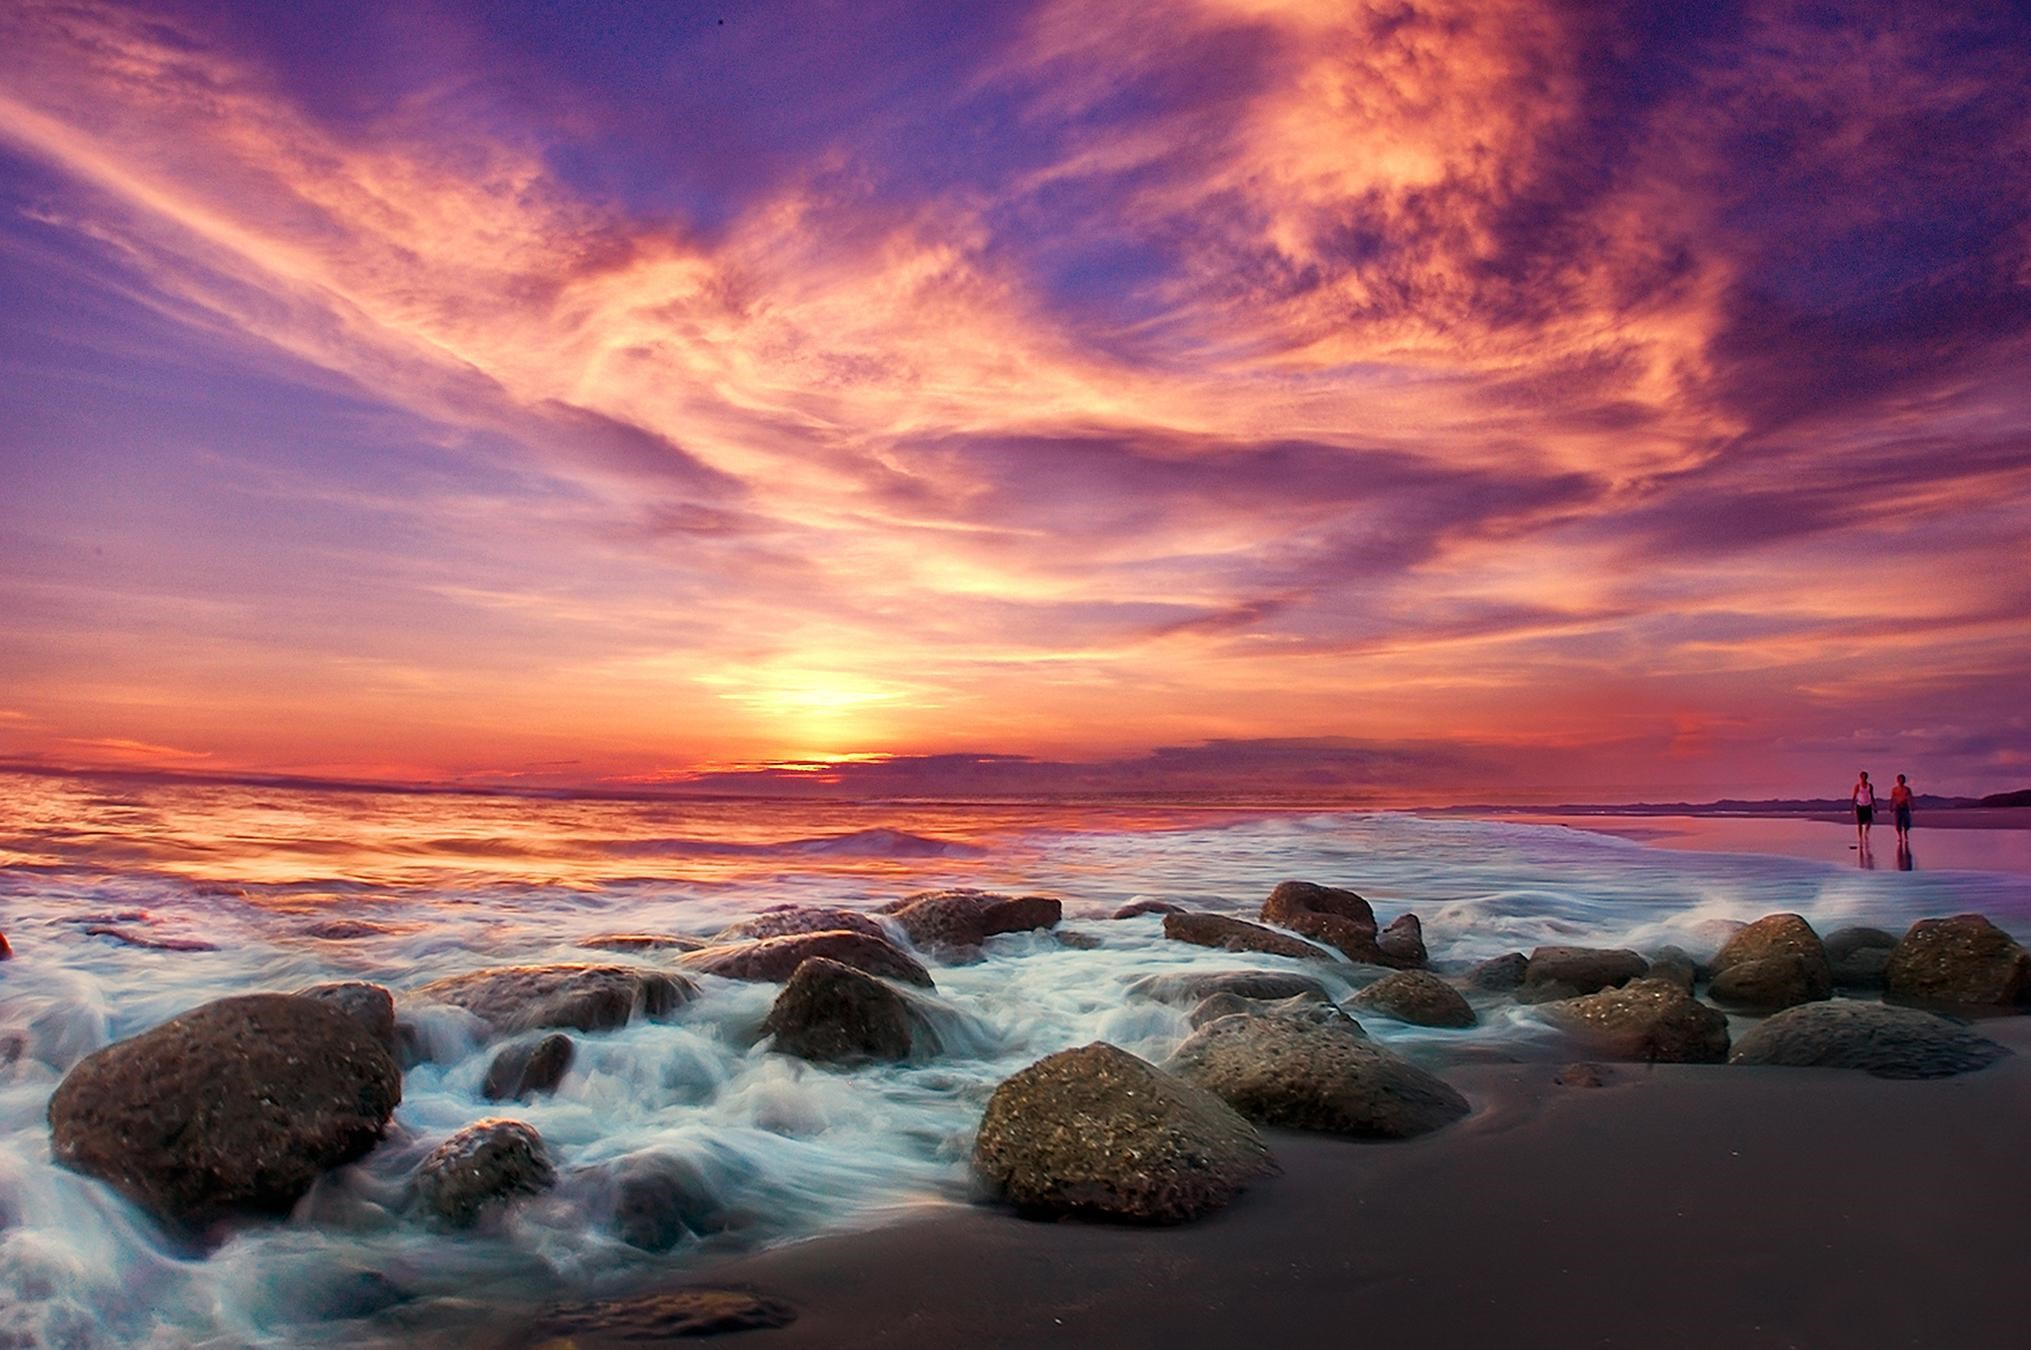 Long Exposure sunset photo waves crashing onto rocks